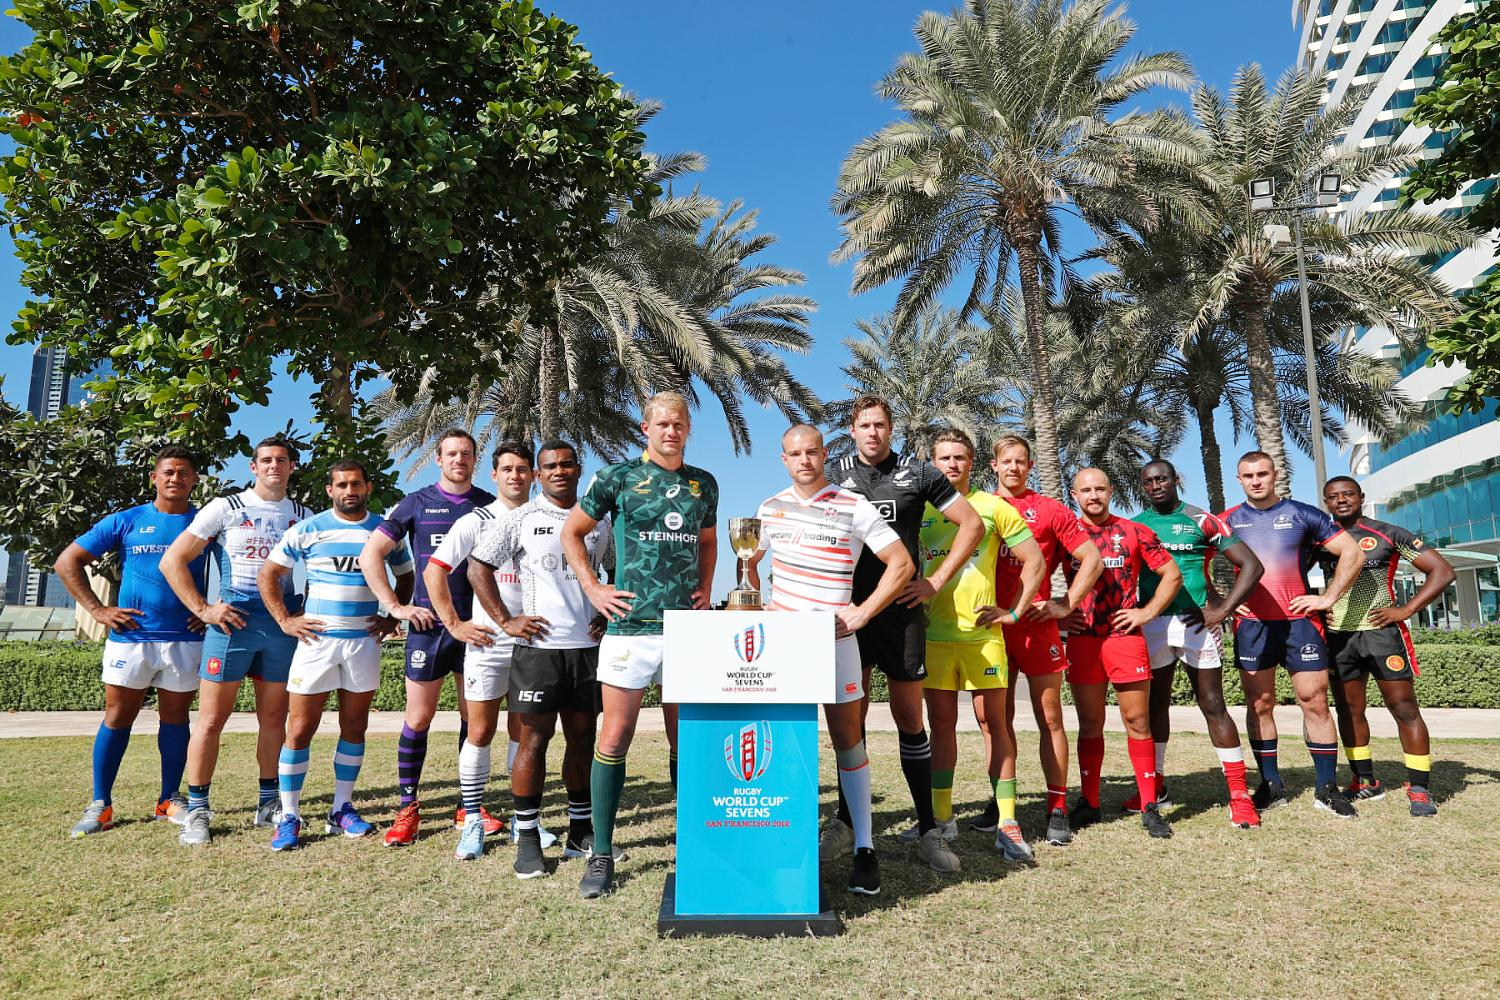 Rugby World Cup Sevens 2018 - Men's qualified teams in Dubai